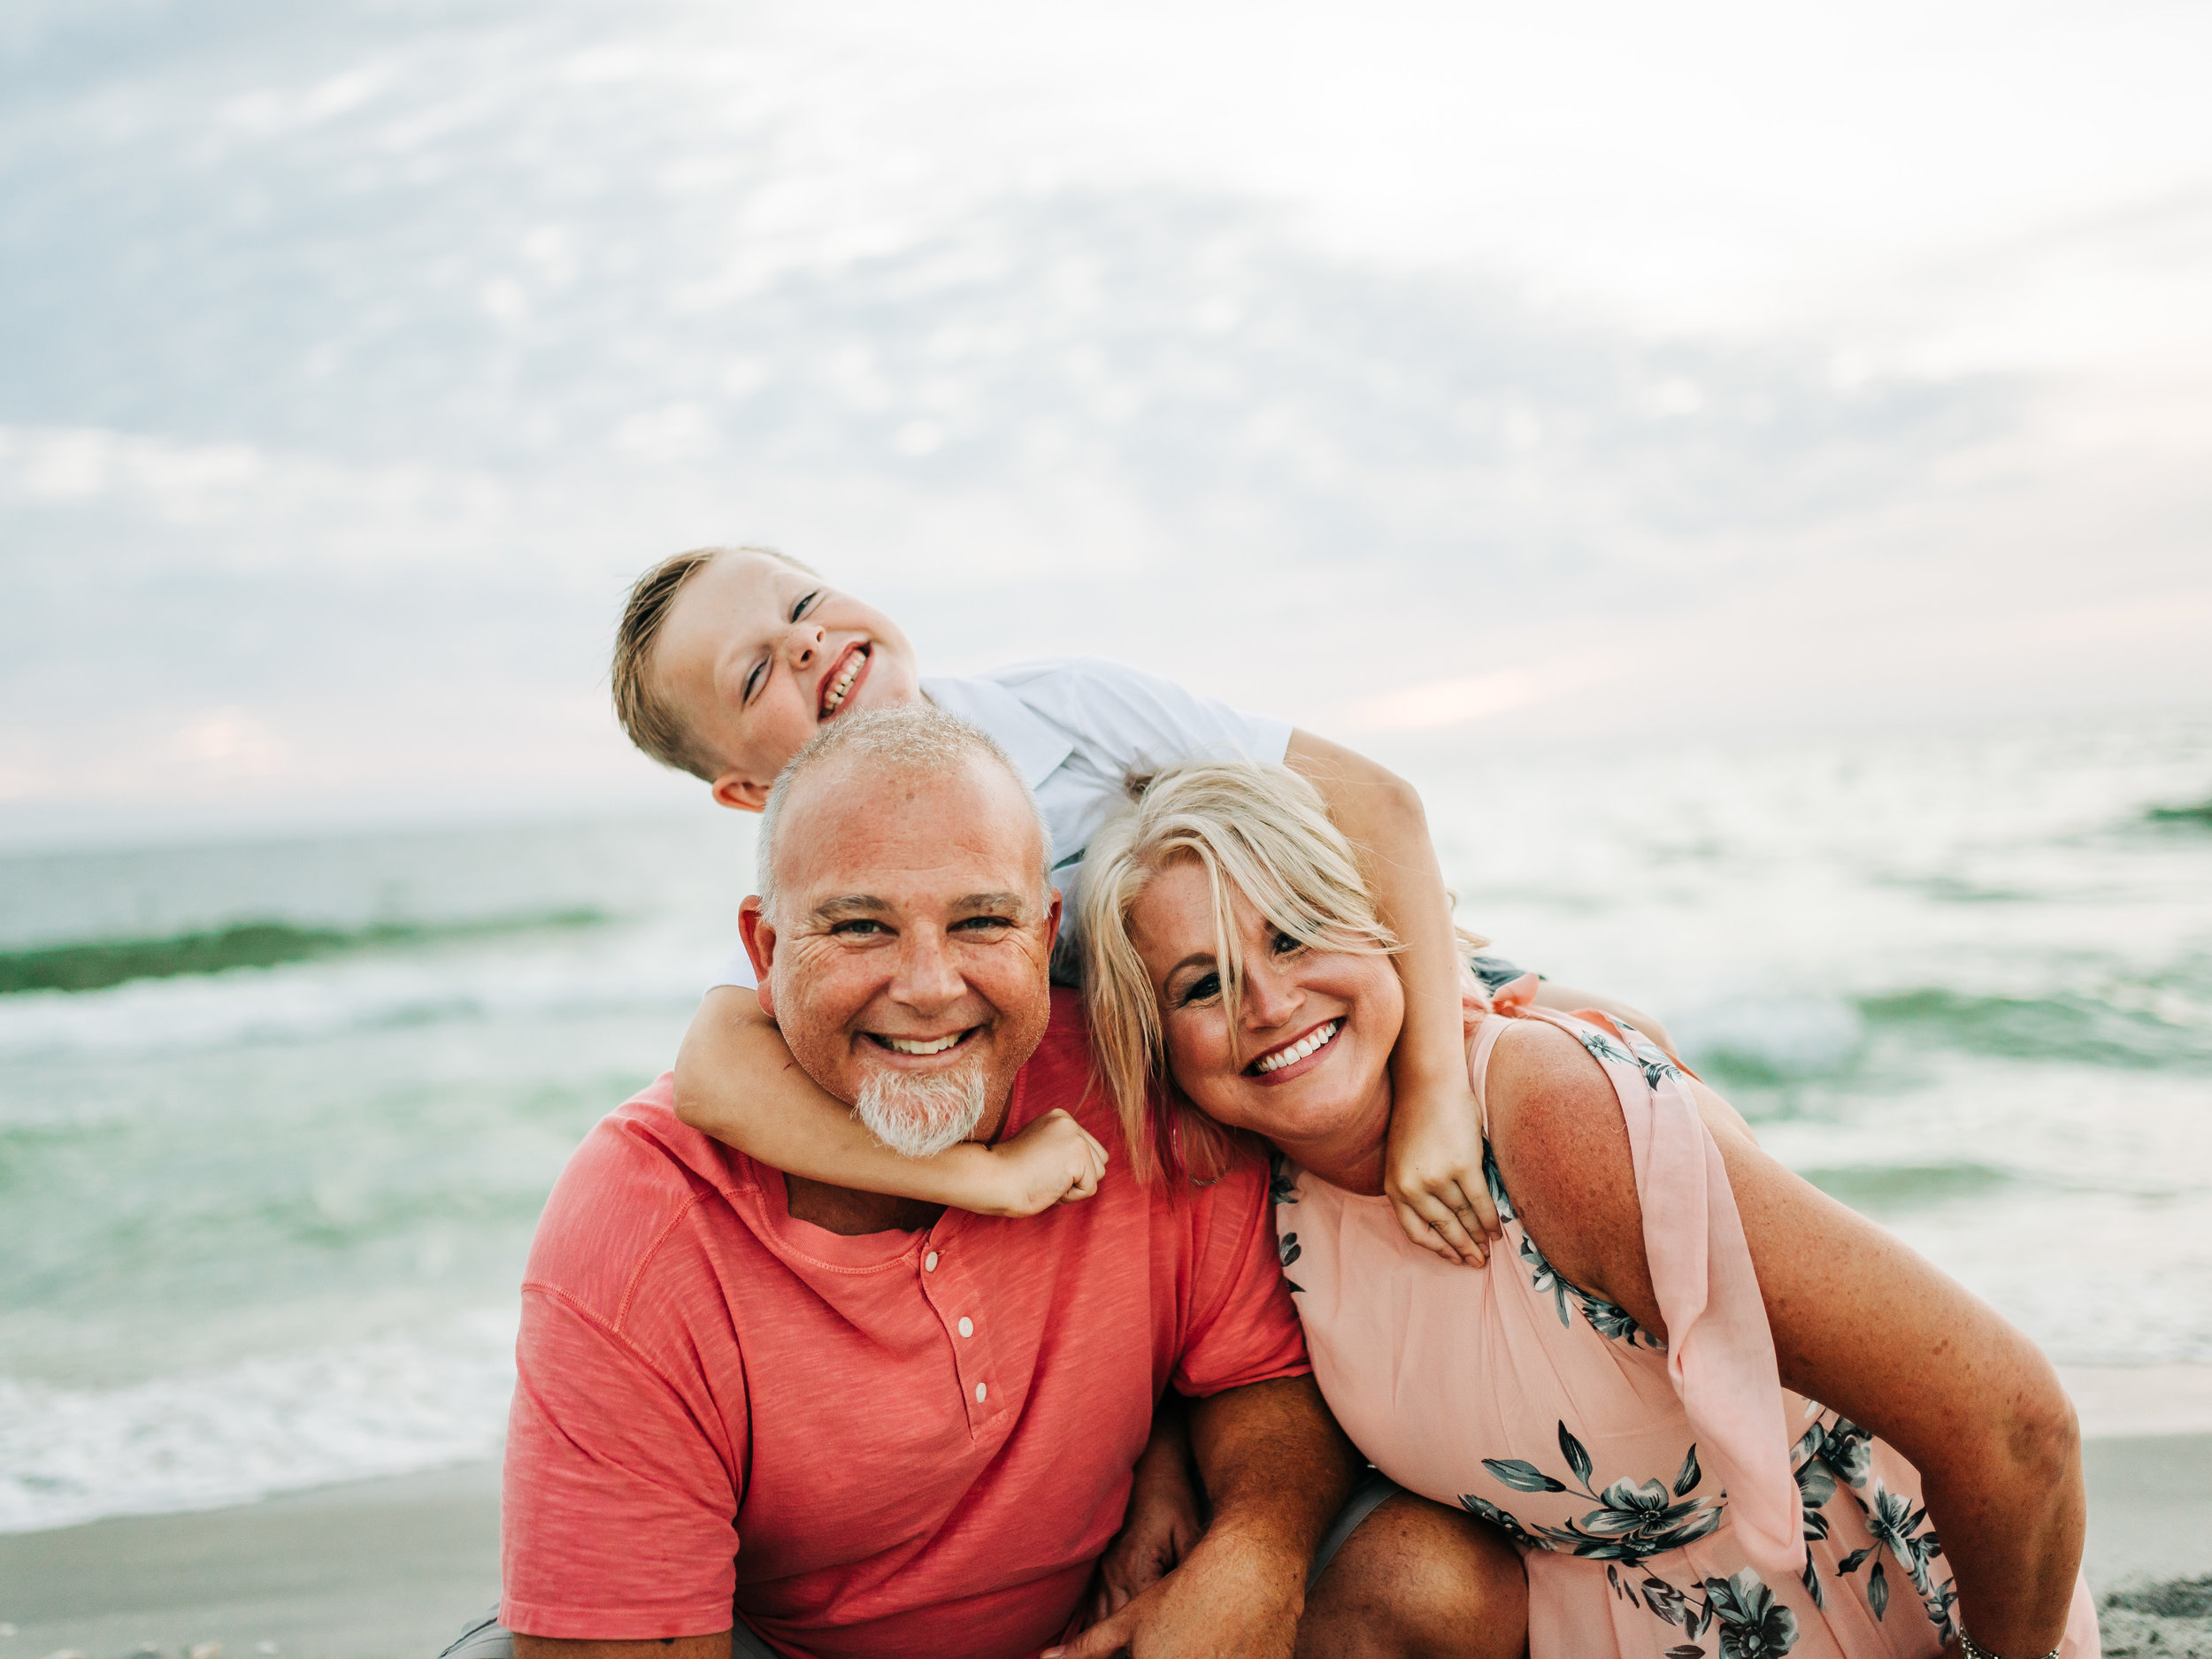 """Kathy - """"I can't tell you or anyone that uses your photography how special you make people feel! Last year we had family photos and they were amazing and again this year we made more. Your heart and soul goes into every moment. Thank you Cheyenne for always making me feel as beautiful as life can imagine."""""""